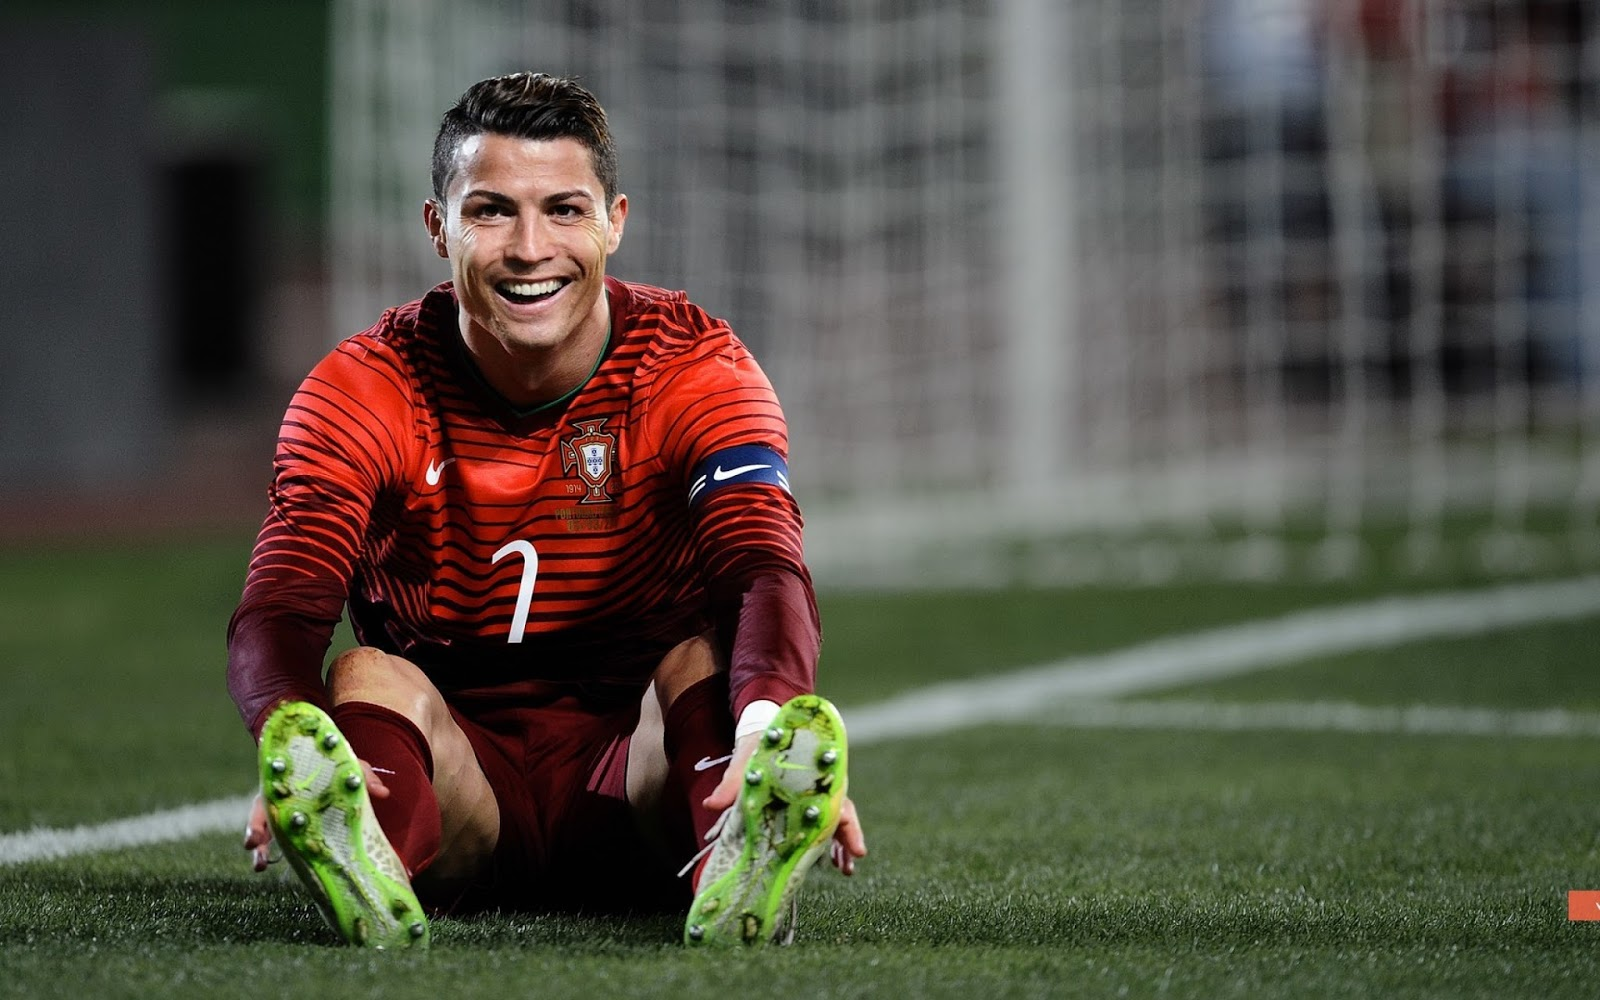 Cristiano Ronaldo HD Wallpapers Cristiano Ronaldo HD Nike Wallpapers,Cristiano Ronaldo CR 7 Football kick HD Wallpaper.